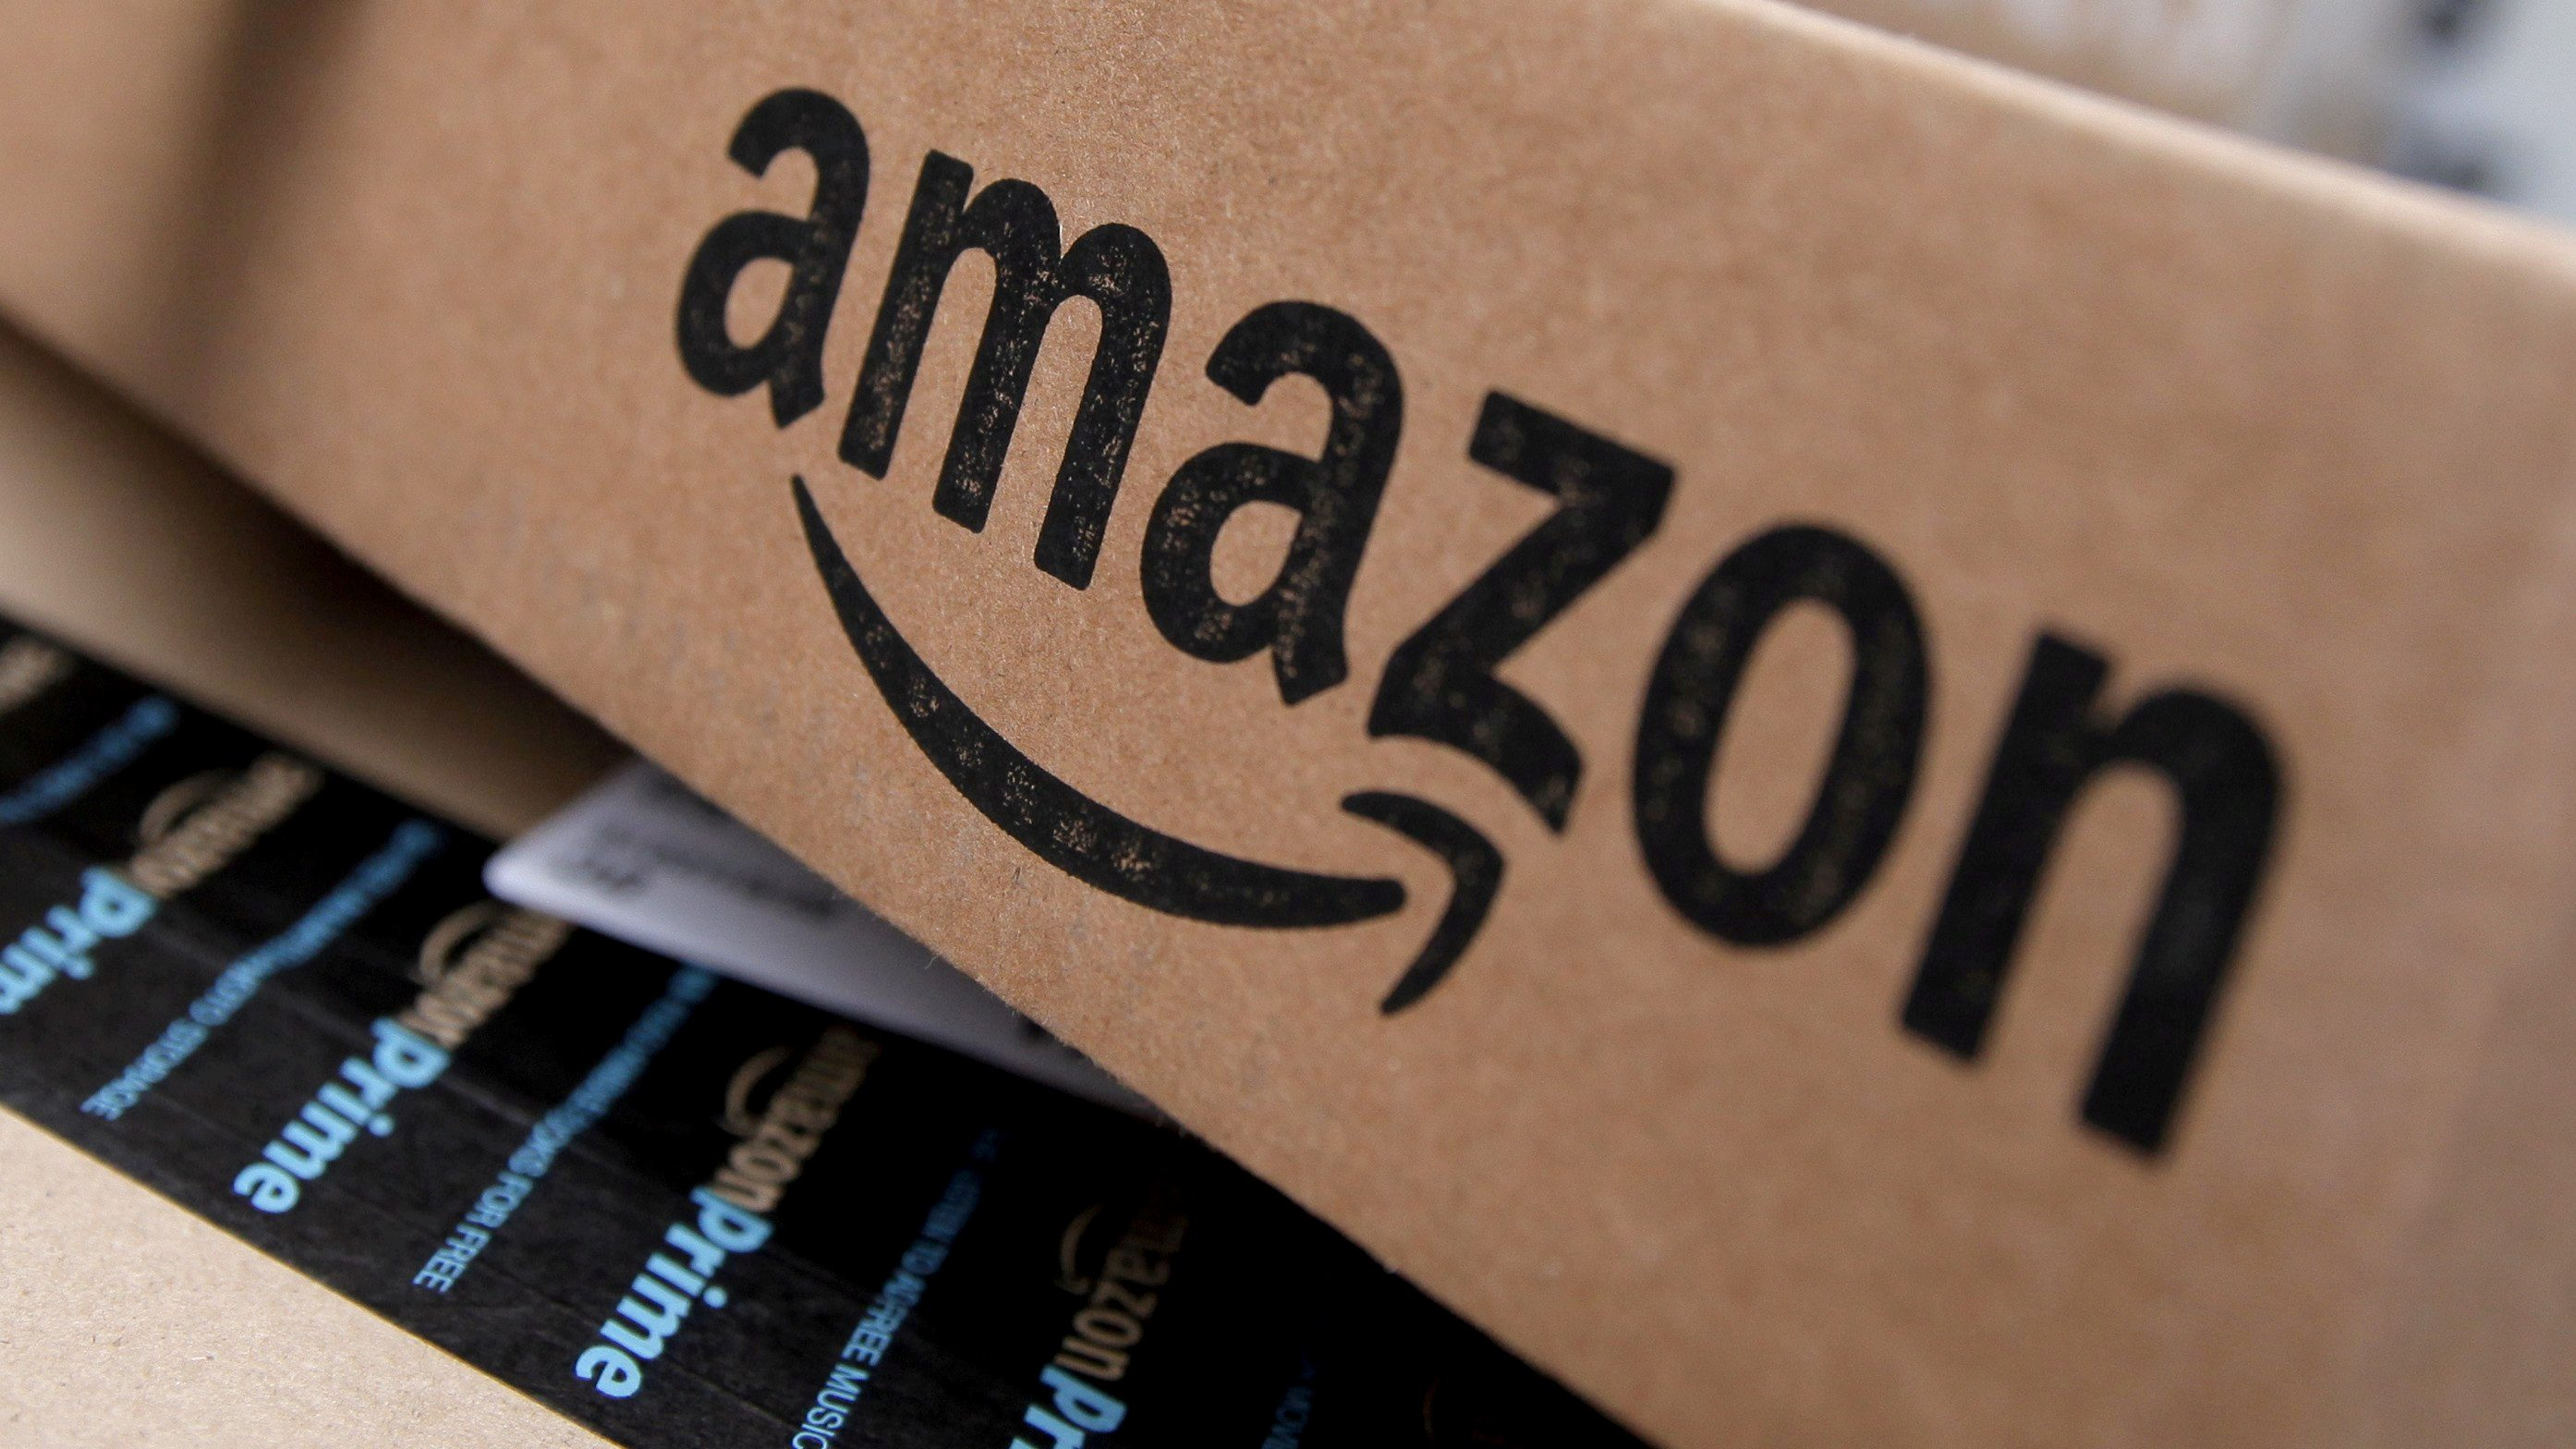 Amazon is taking aim at one of its few remaining rivals